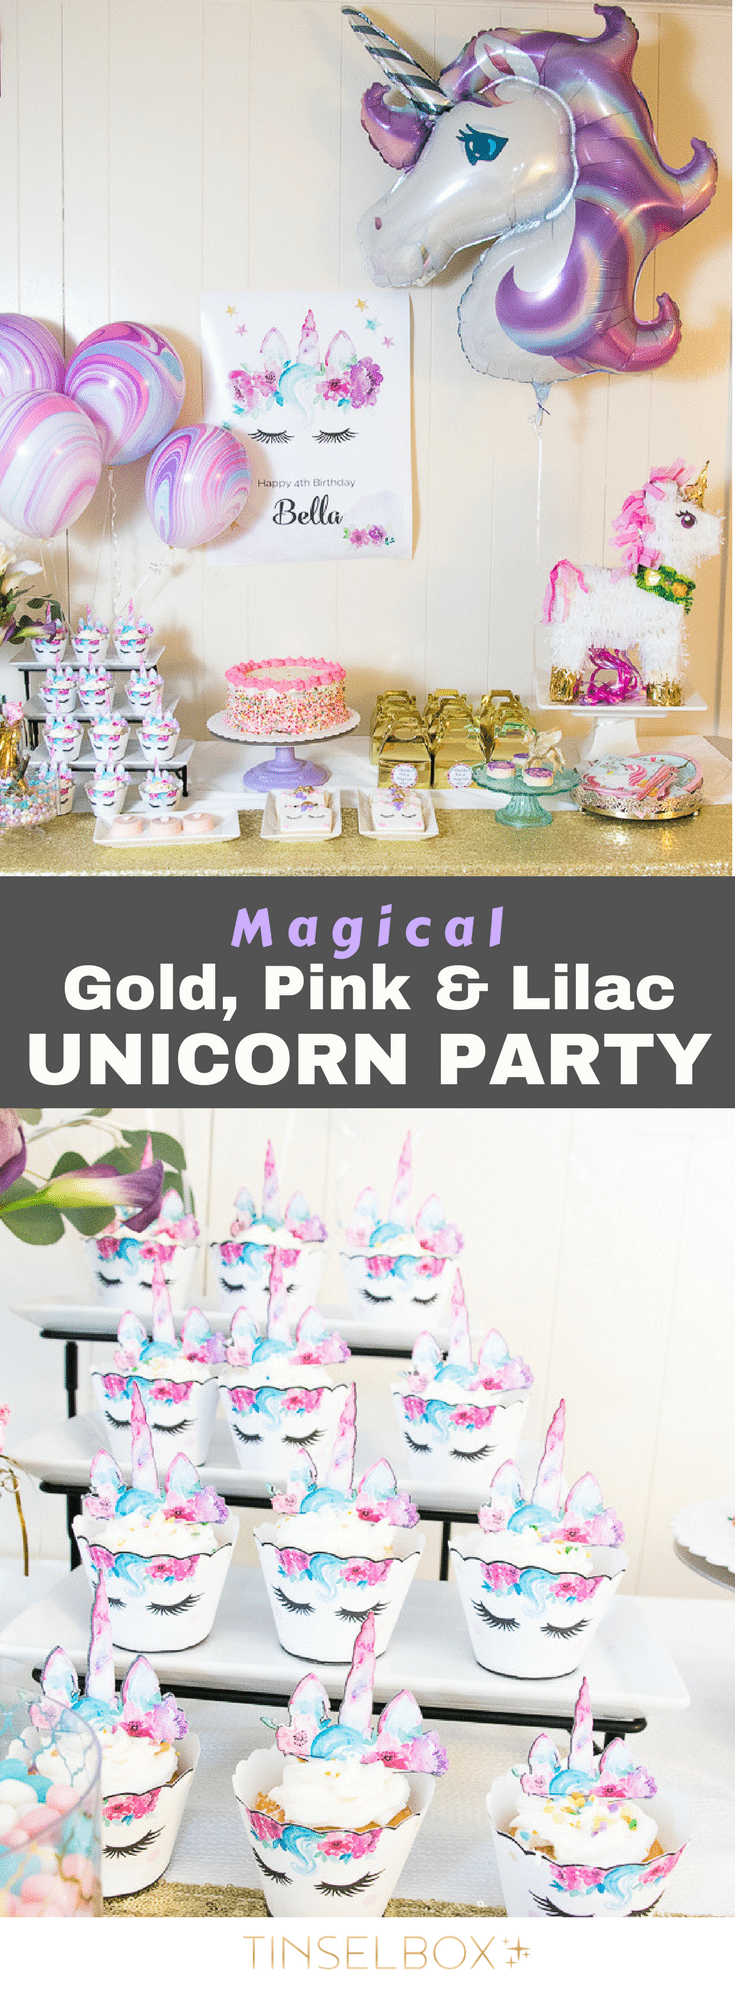 This magical, sparkling Unicorn party in gold, lilac and pink was so darling for my little Isabella's 4th birthday. Join us to see what we created for a dessert table, unicorn party games and printables.  #unicorn #unicornparty #unicorndiy #kidsparty